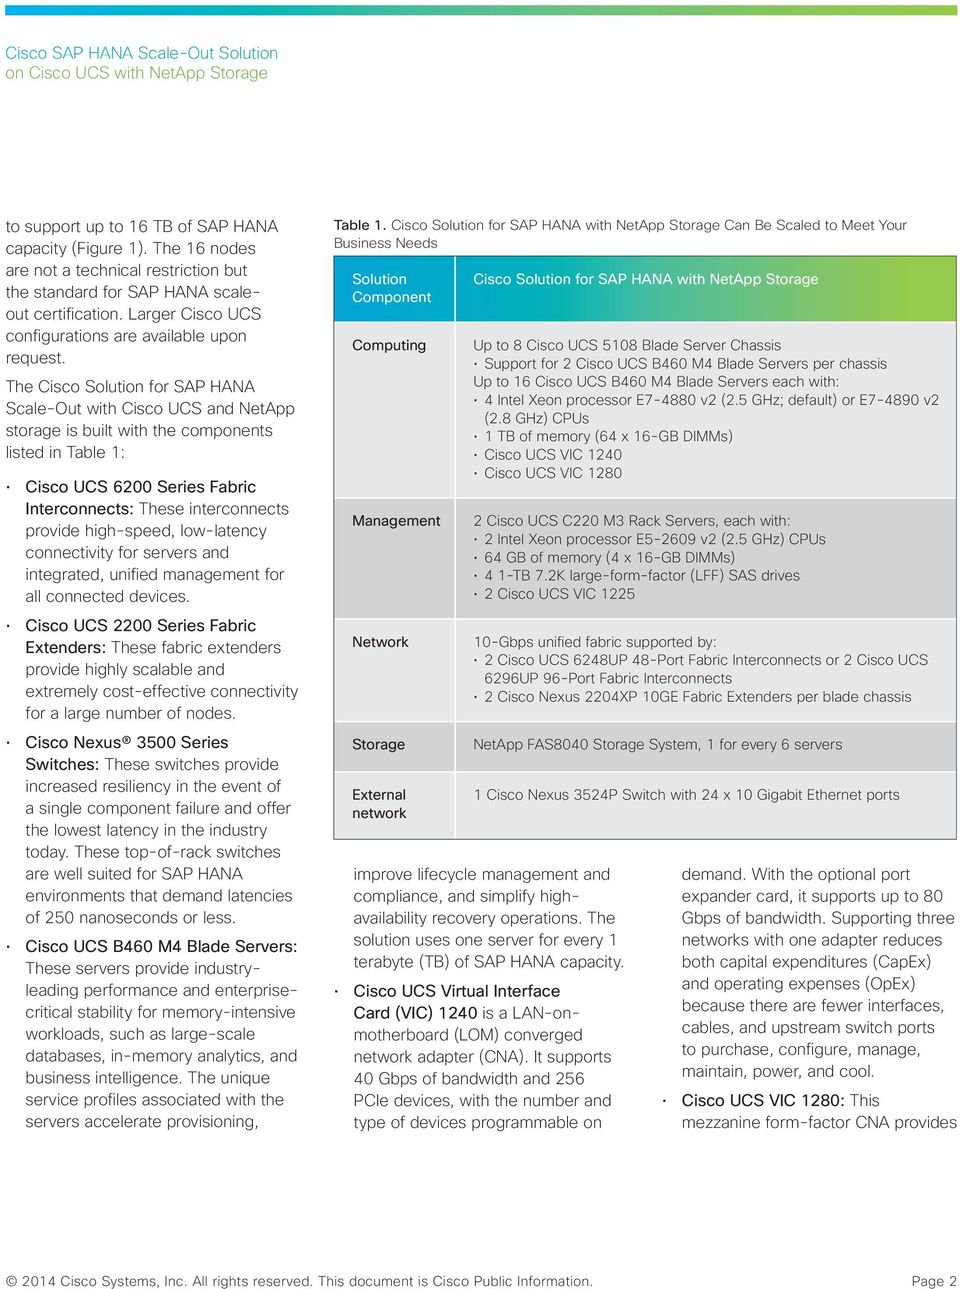 The Cisco Solution for SAP HANA Scale-Out with Cisco UCS and NetApp storage is built with the components listed in Table 1: Cisco UCS 6200 Series Fabric Interconnects: These interconnects provide